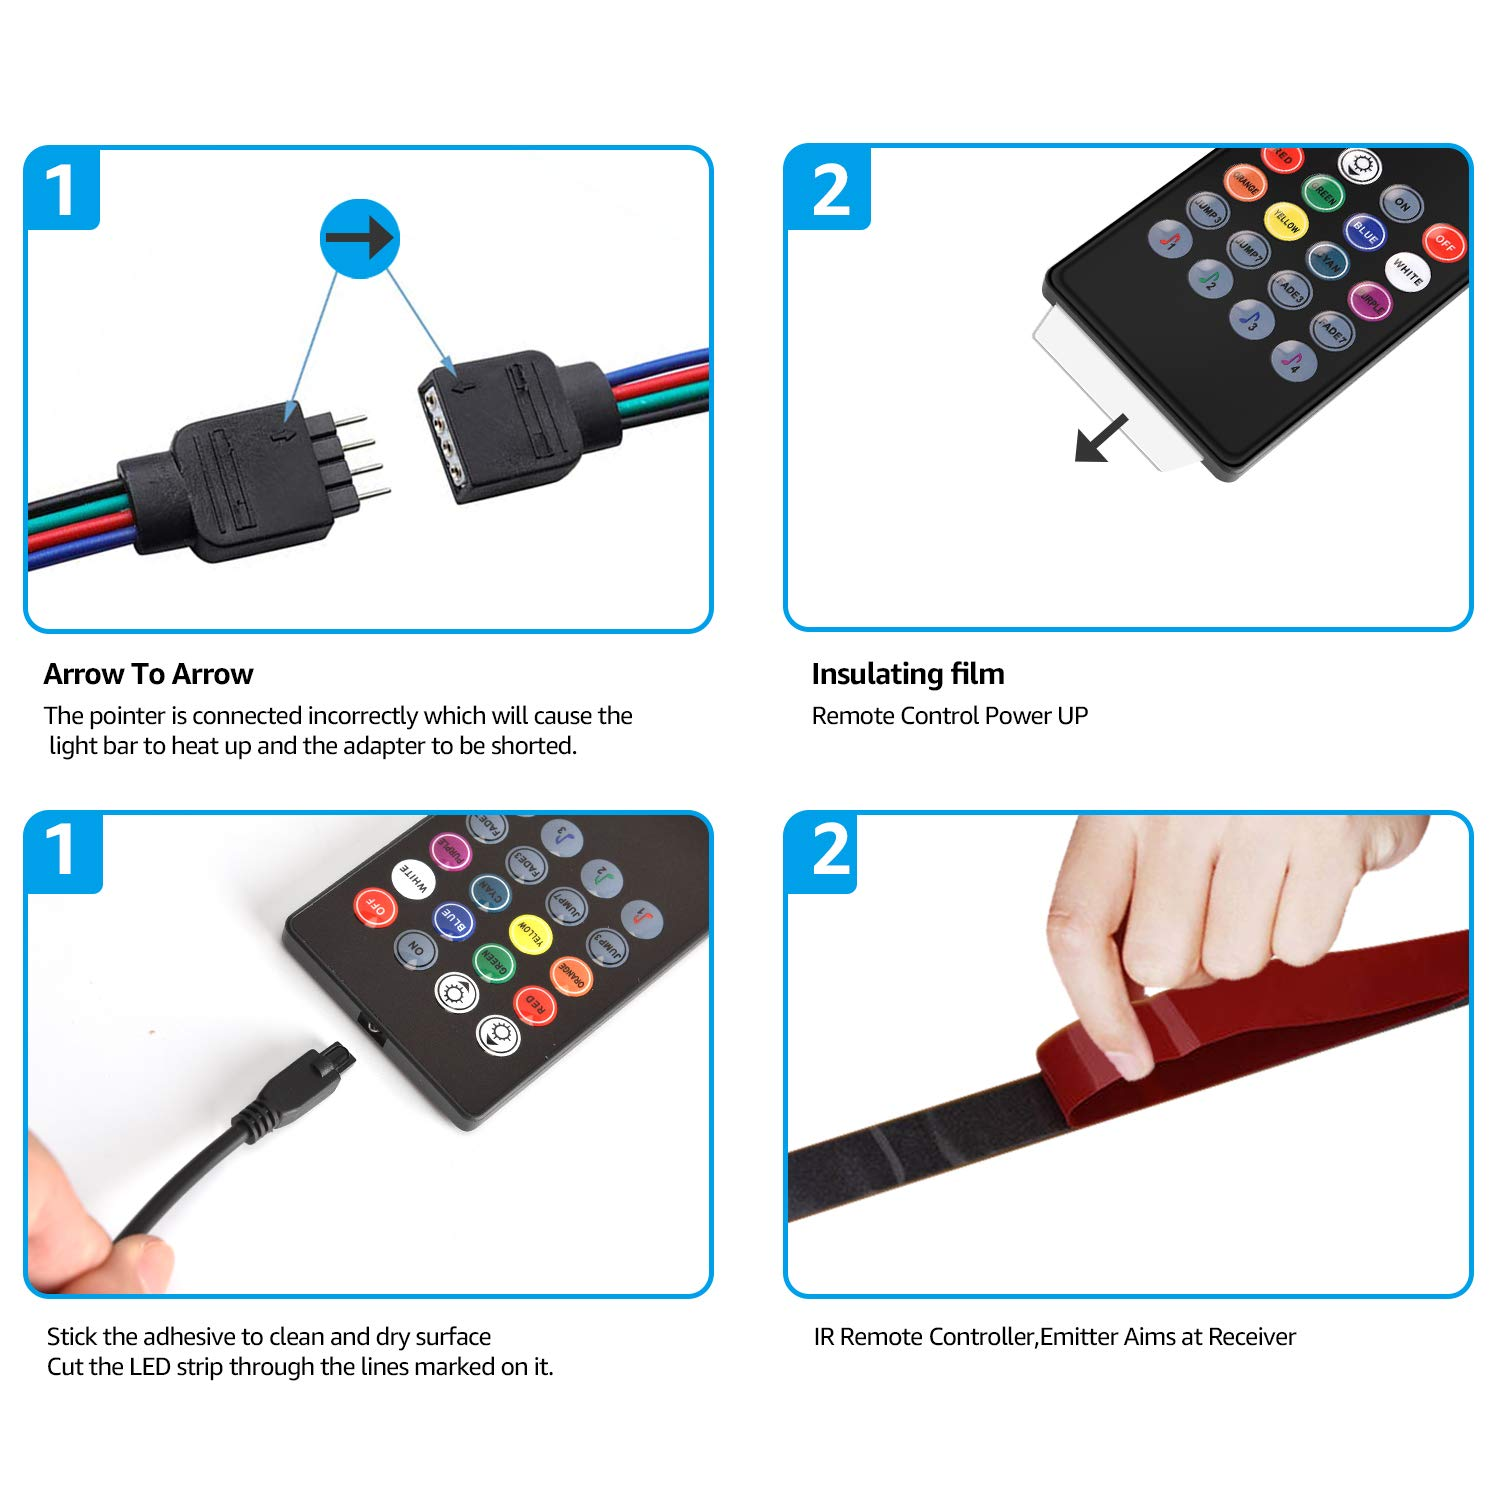 LED Strip Lights, HeySuun 32.8FT/10M 20Key RGB Light Strips, Music Sync Color Changing, Rope Light 600 SMD 3528 LED, IR Remote Controller Flexible Strip for Home Party Bedroom DIY Party Indoor Outdoor by HeySuun (Image #6)